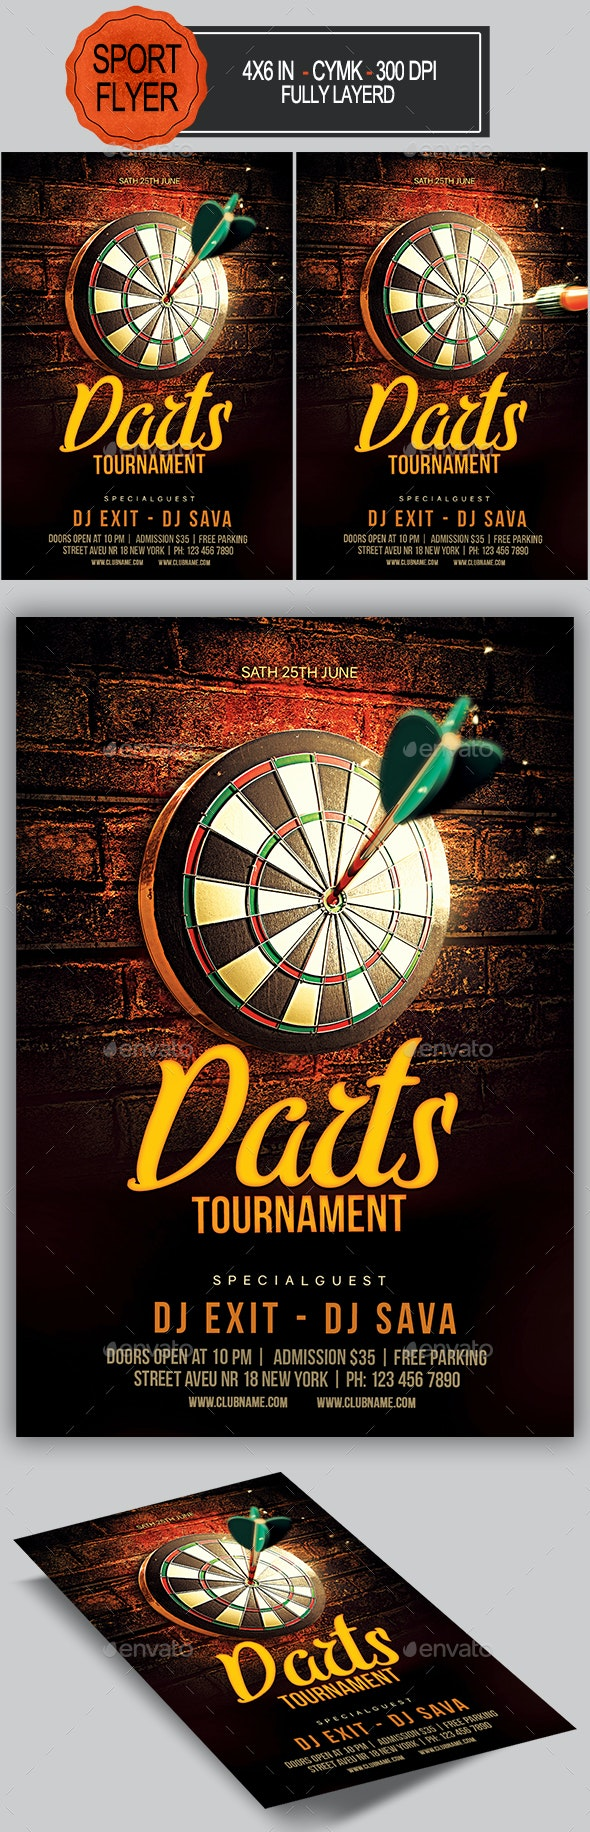 Darts Flyer - Sports Events